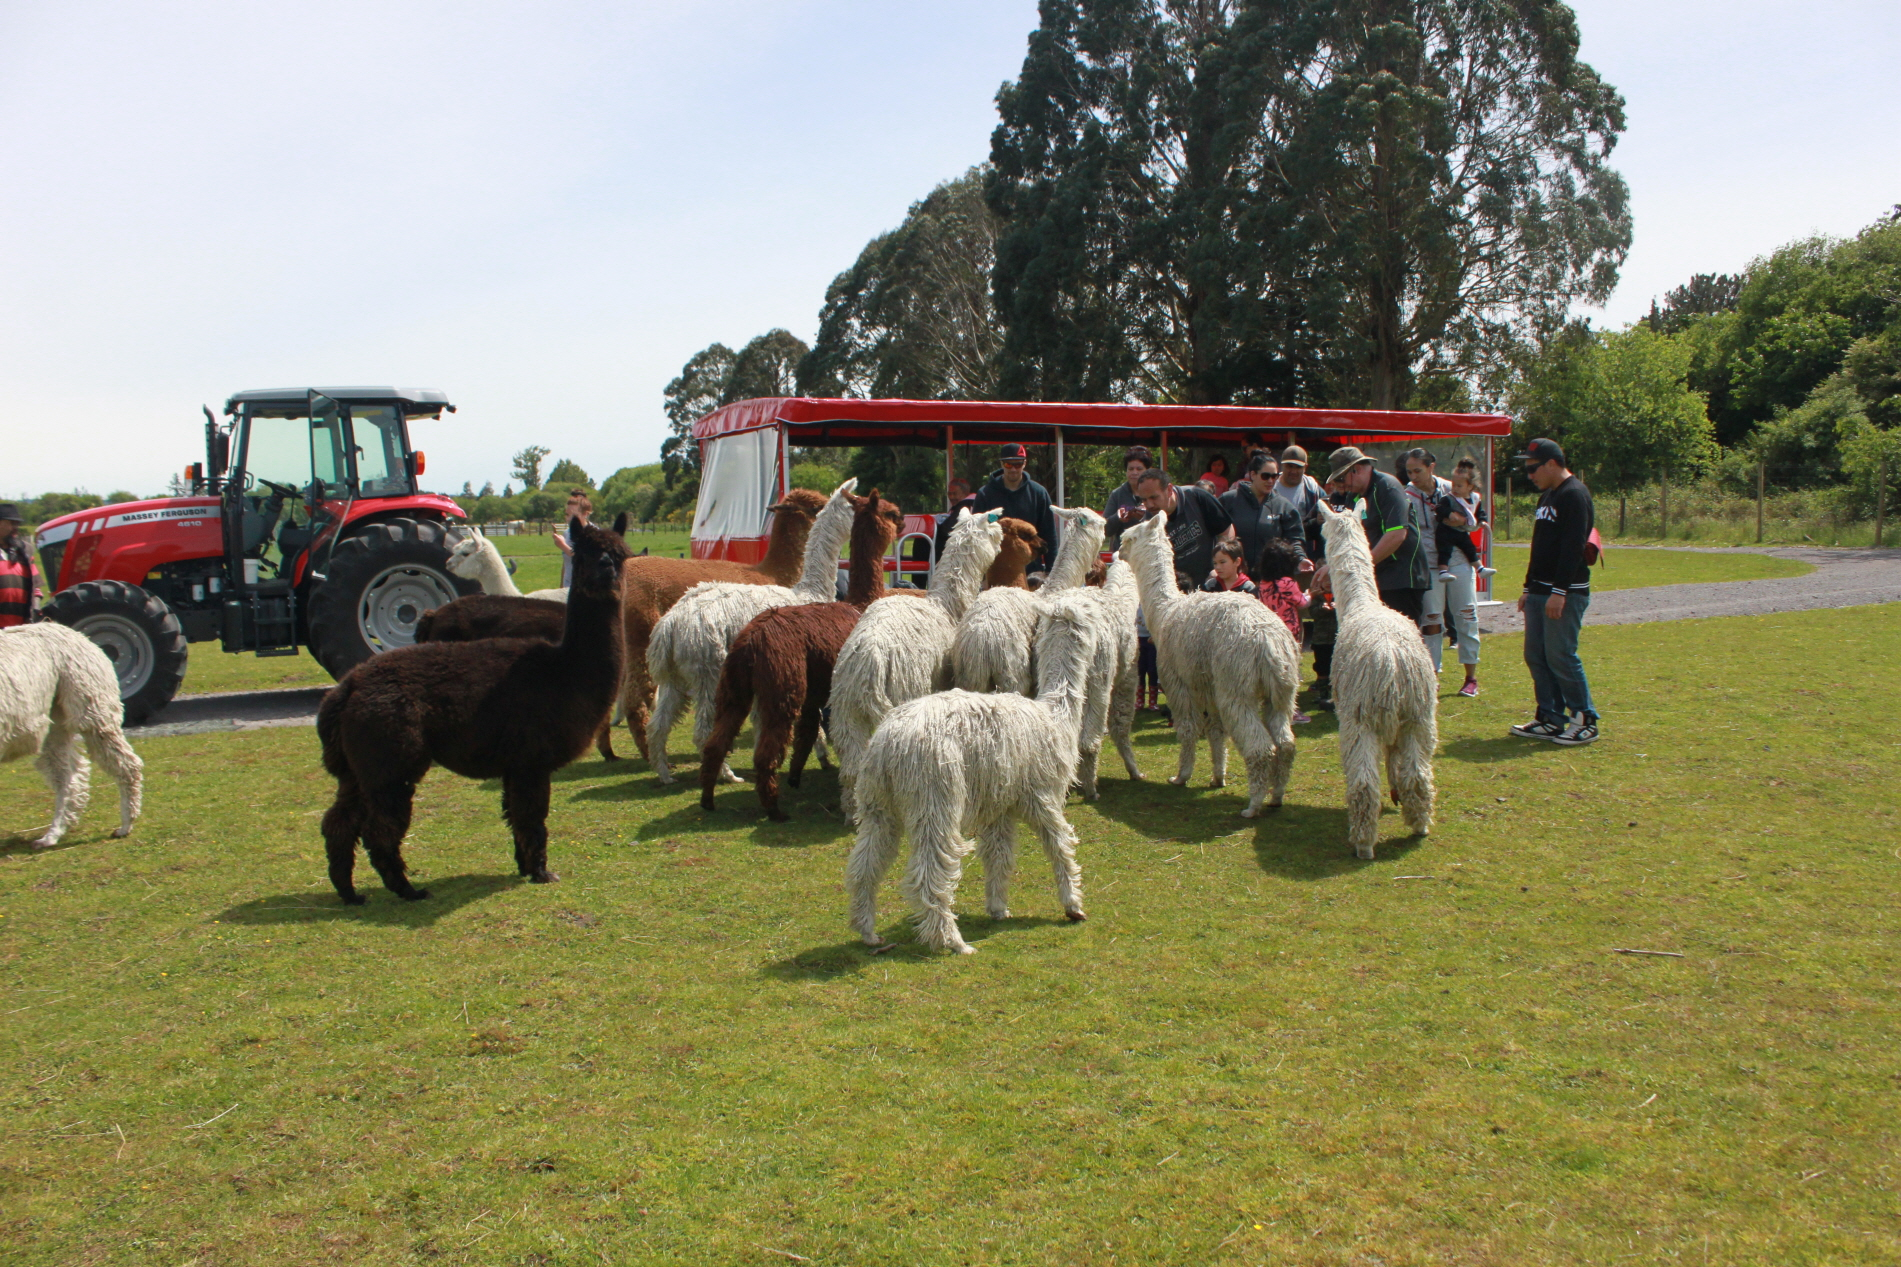 Join an hour long guided NZ farm tour in a comfort trailer.